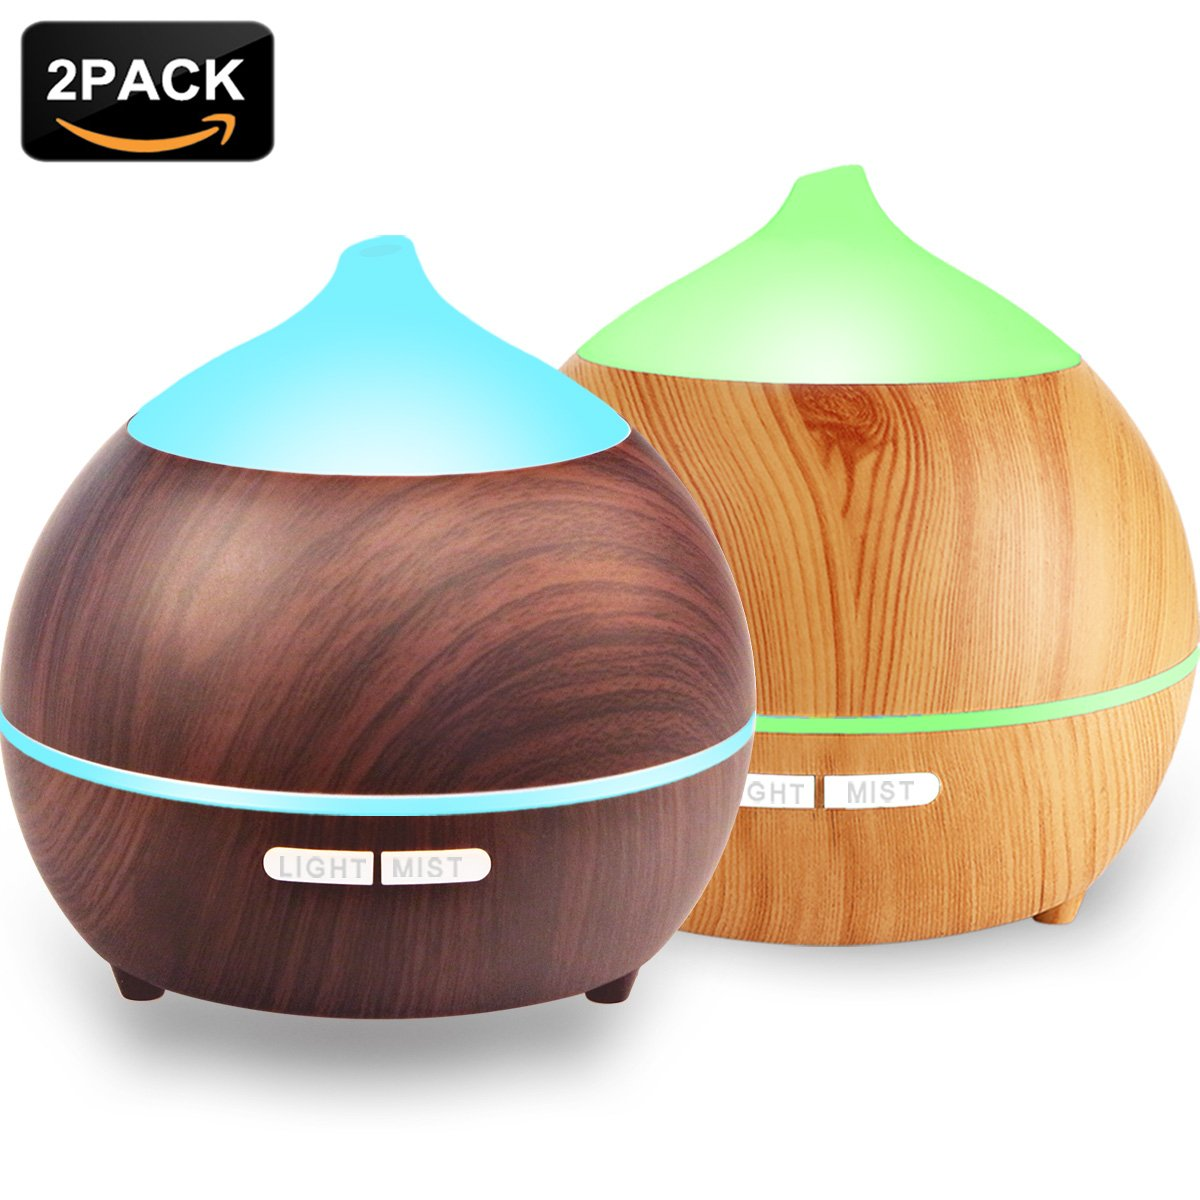 2PACK Essential Oil Diffuser, Iextreme 250ml Wood Grain diffuser With Auto Shut Off, 8 Colorful LED Light, Adjustable Mode Aroma Diffuser For Baby, Yoga, Spa, Home, Office